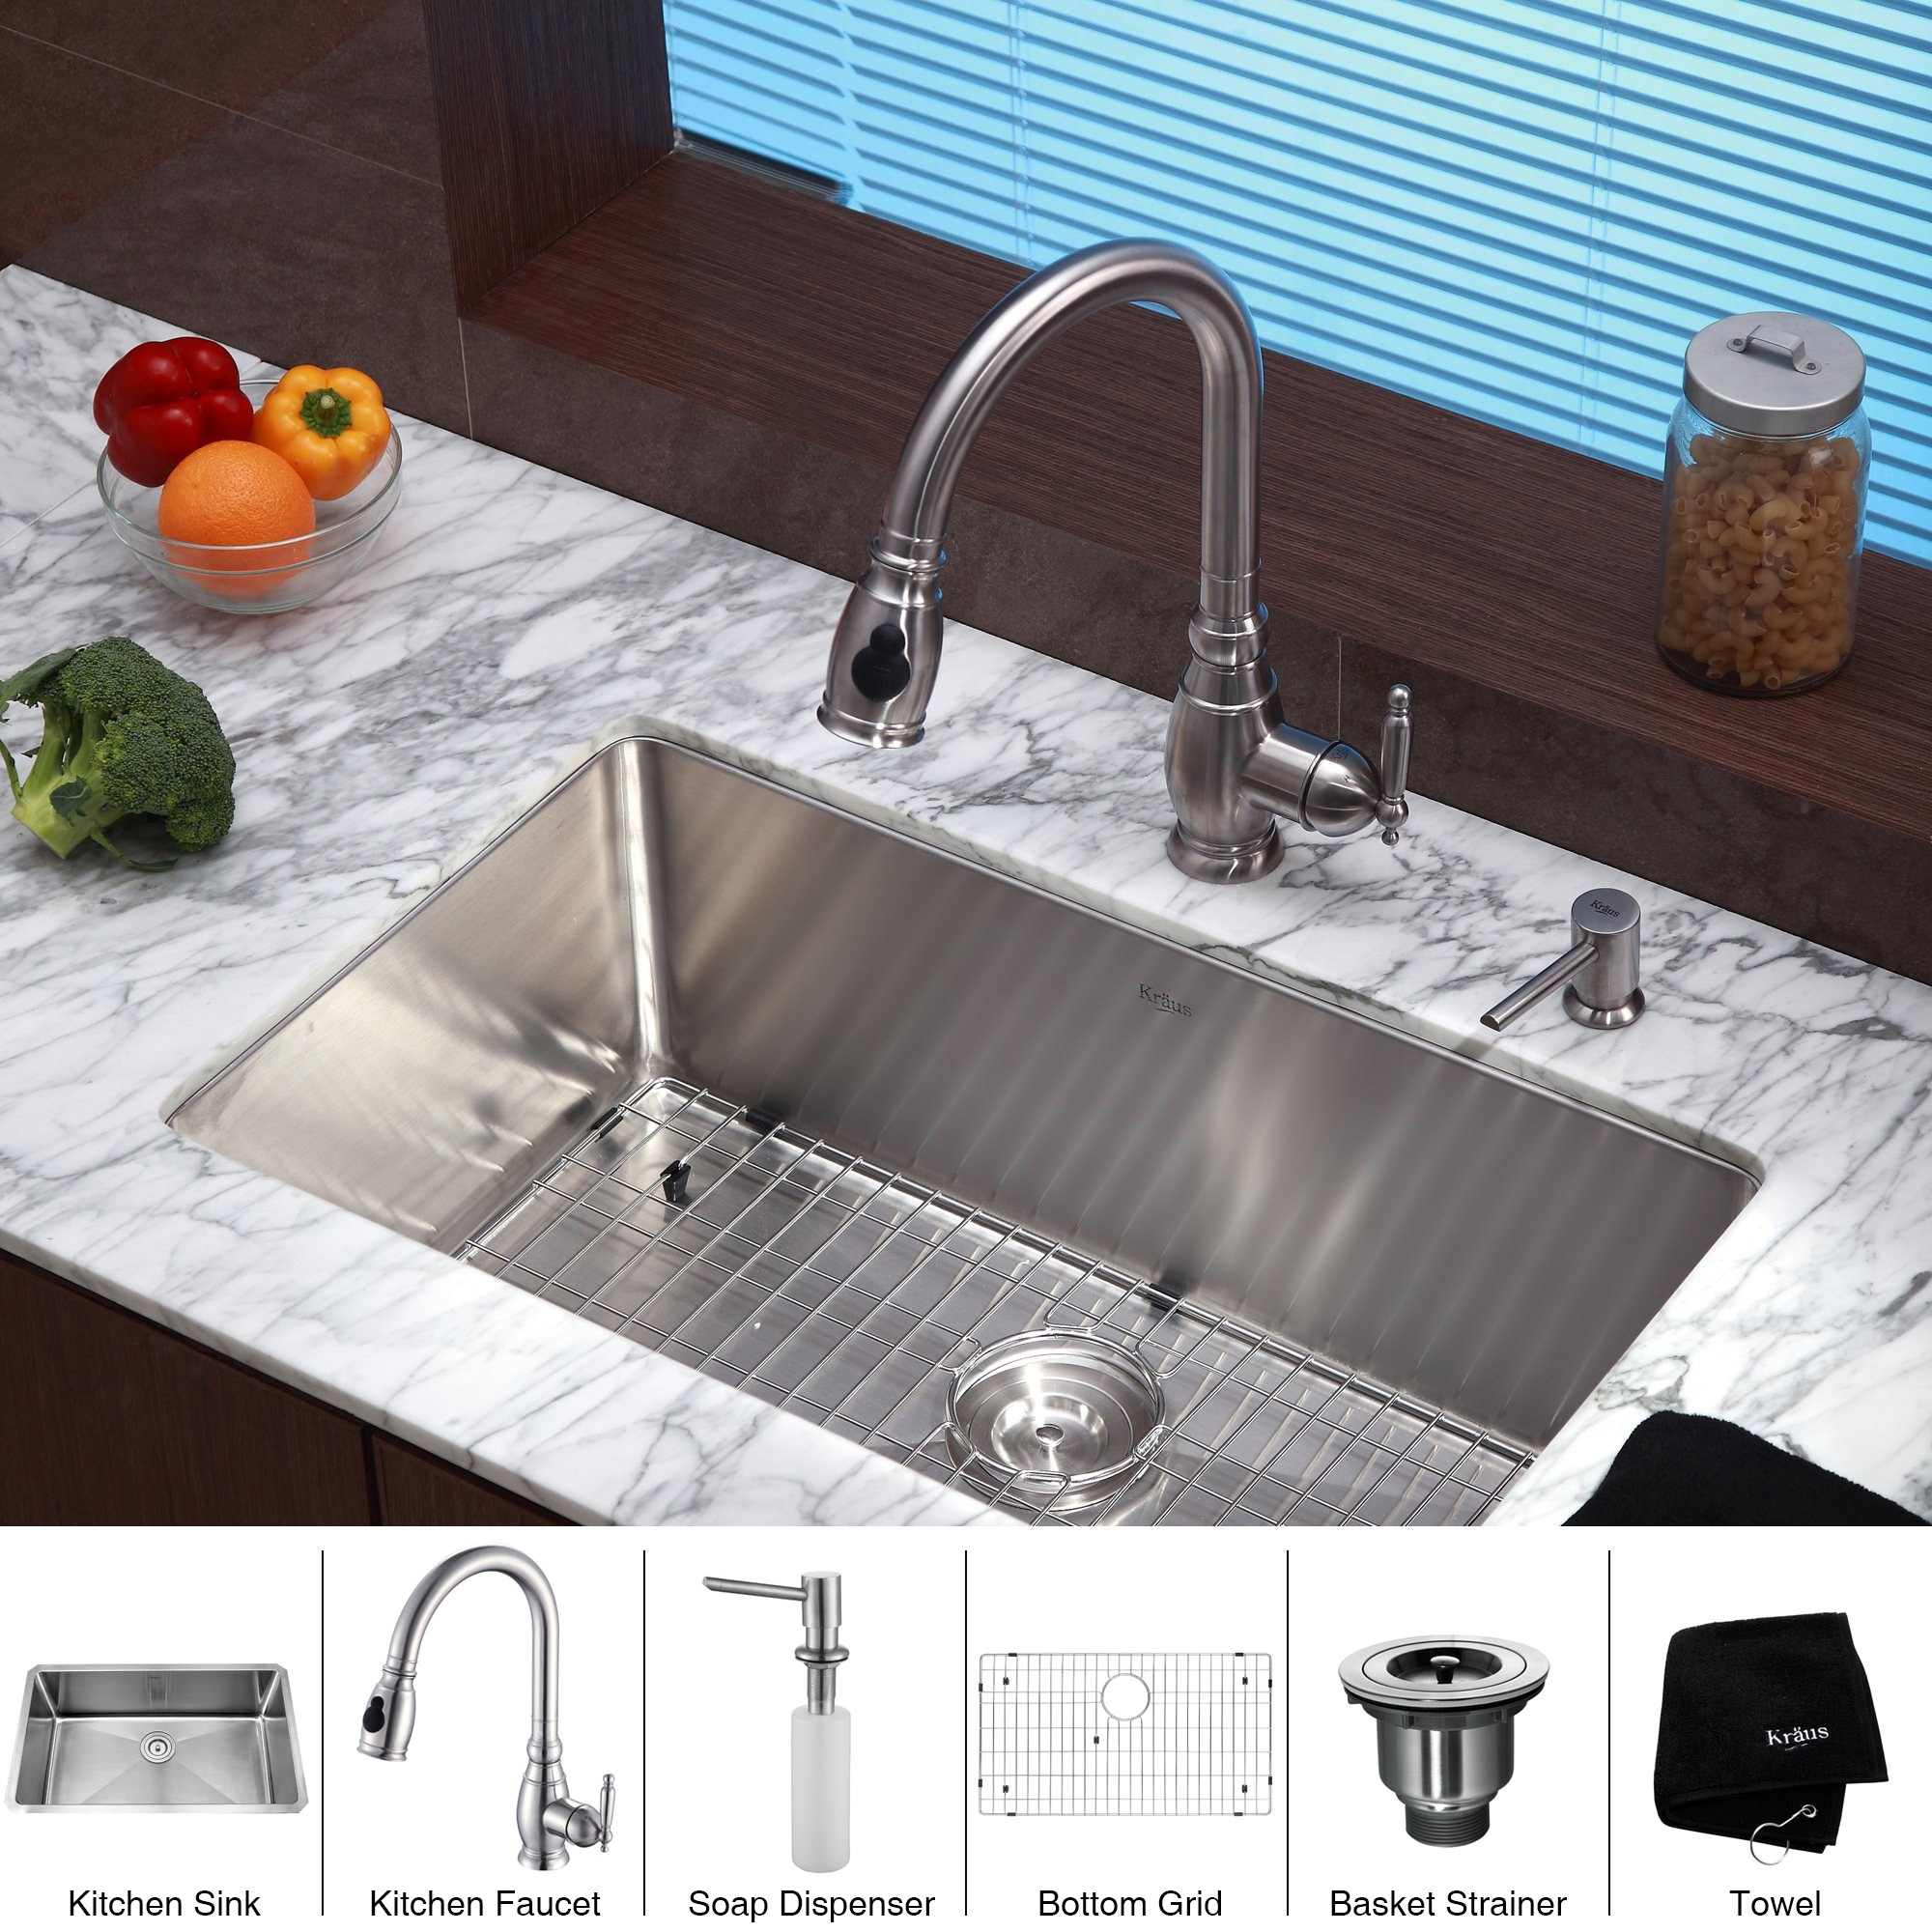 Ideas, kohler kitchen faucets with soap dispenser kohler kitchen faucets with soap dispenser kitchen interesting kitchen sink faucet for your kitchen decor 2000 x 2000  .